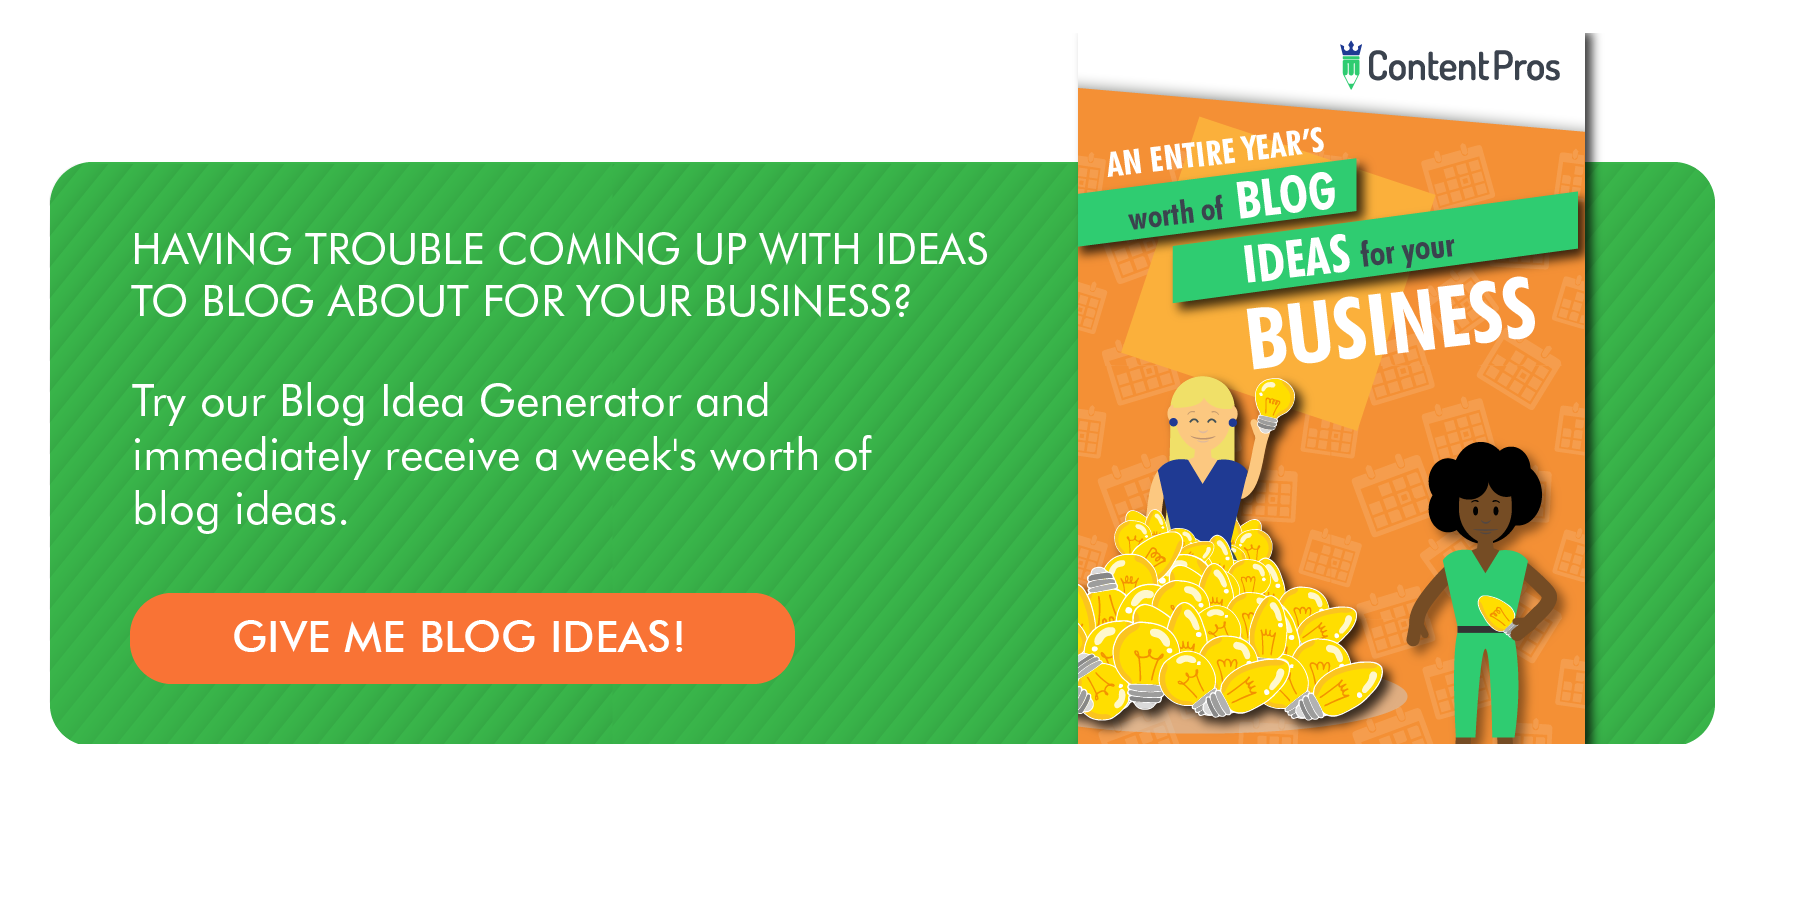 Content Pros Blog Ideas for your business